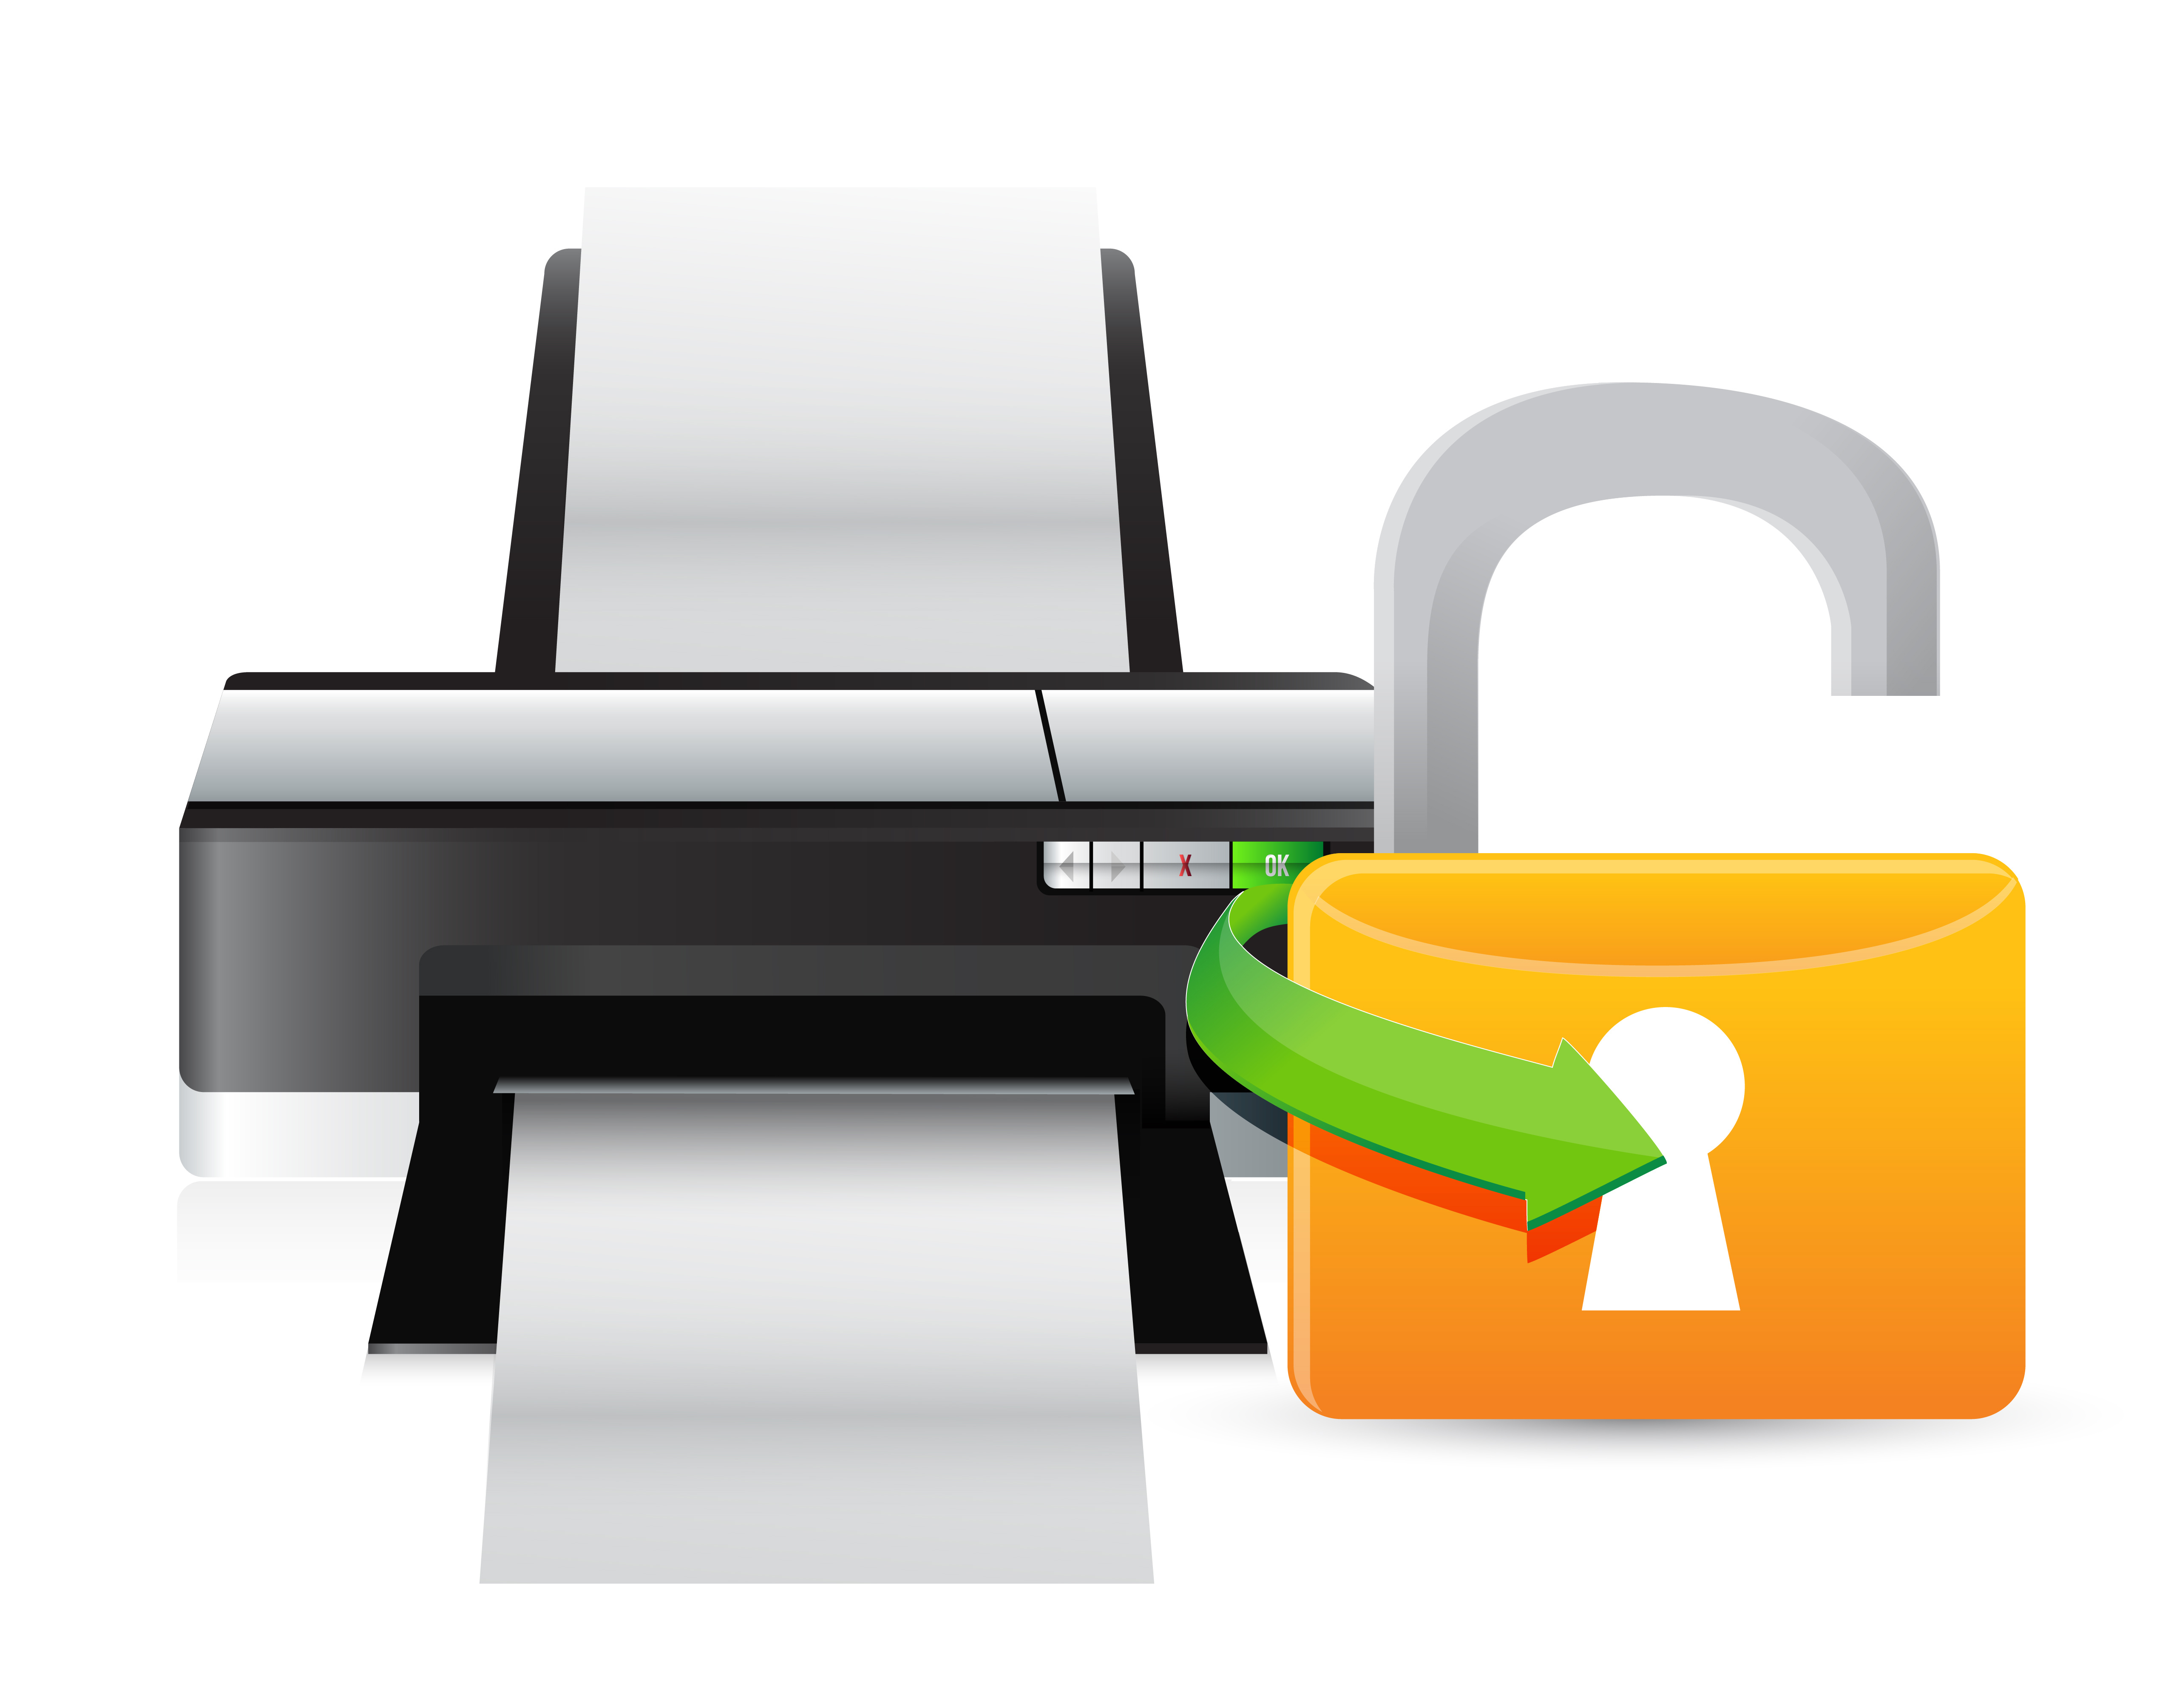 PrintNightmare Vulnerability in Majority of Windows Devices